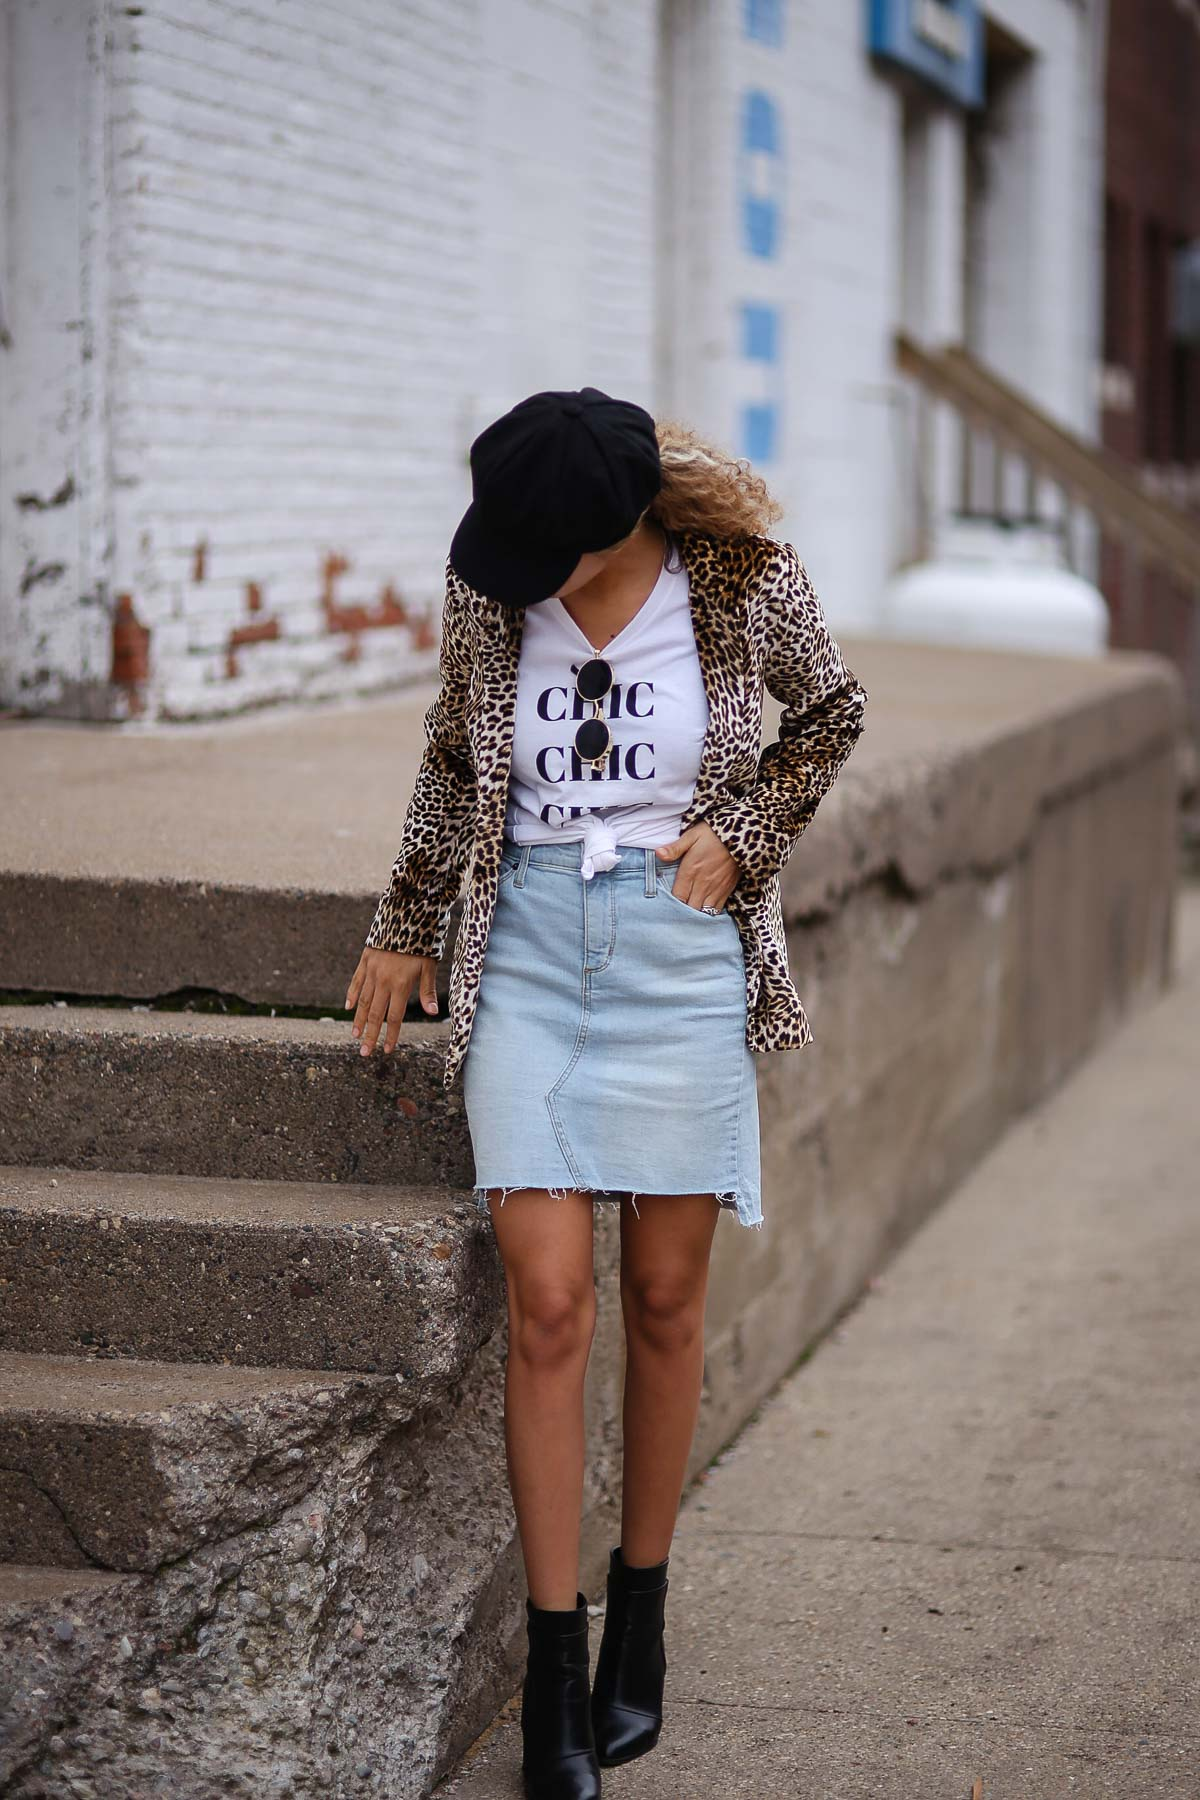 Carolyn of My Chic Obsession shows you 3 ways to wear a graphic tee